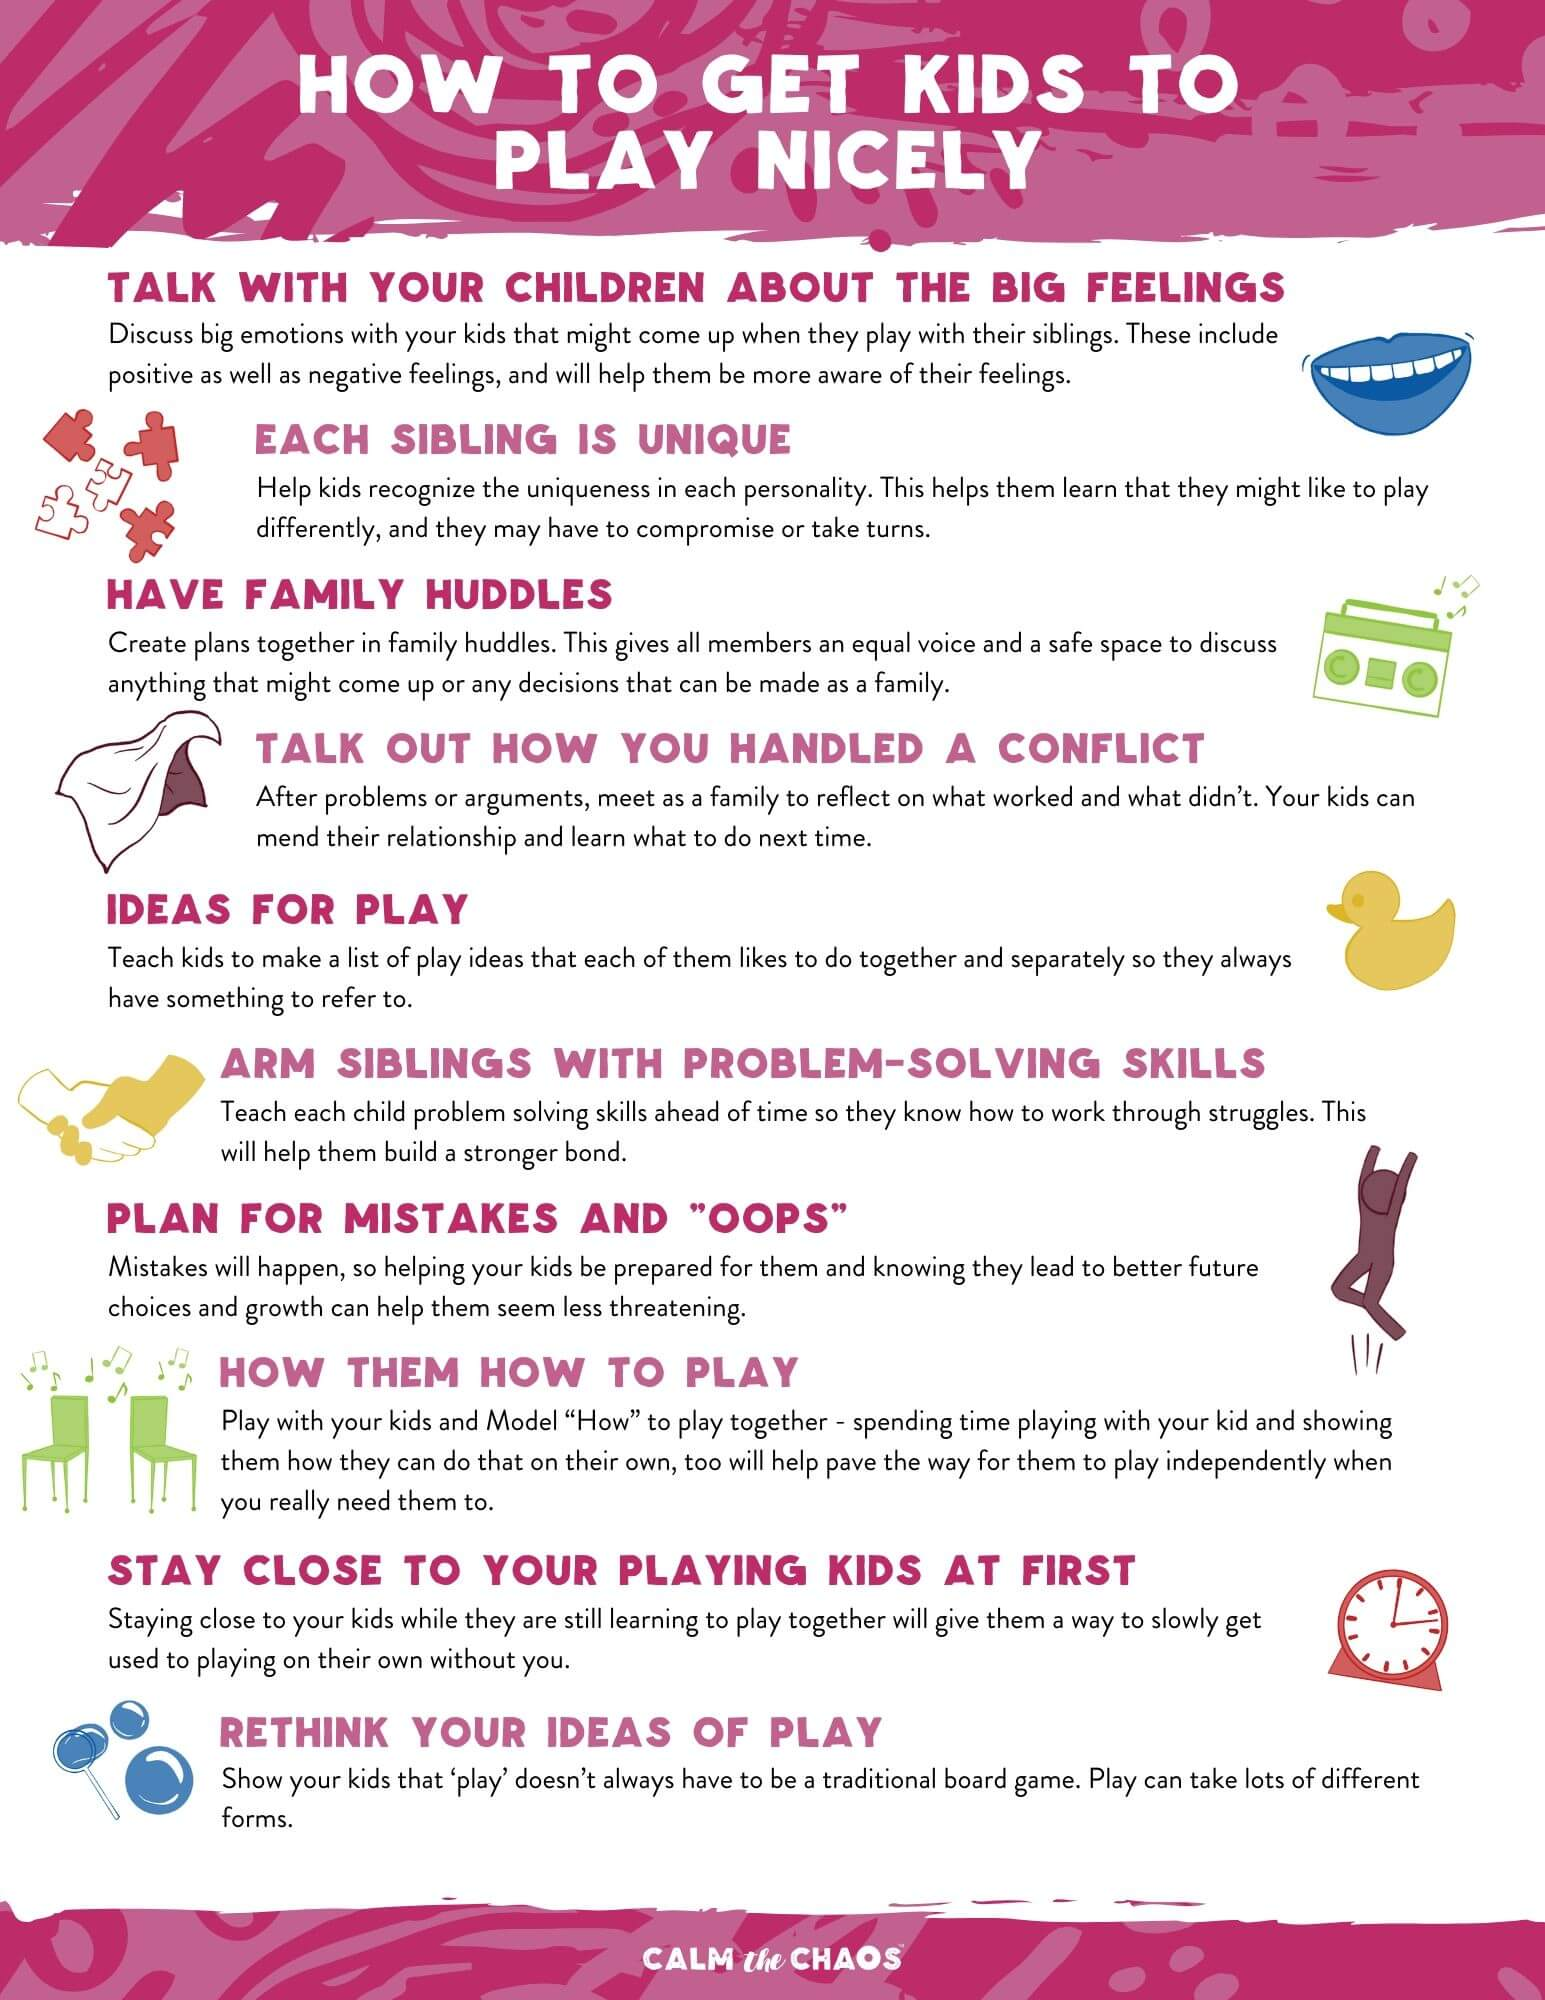 How to get Kids to Play Nicely